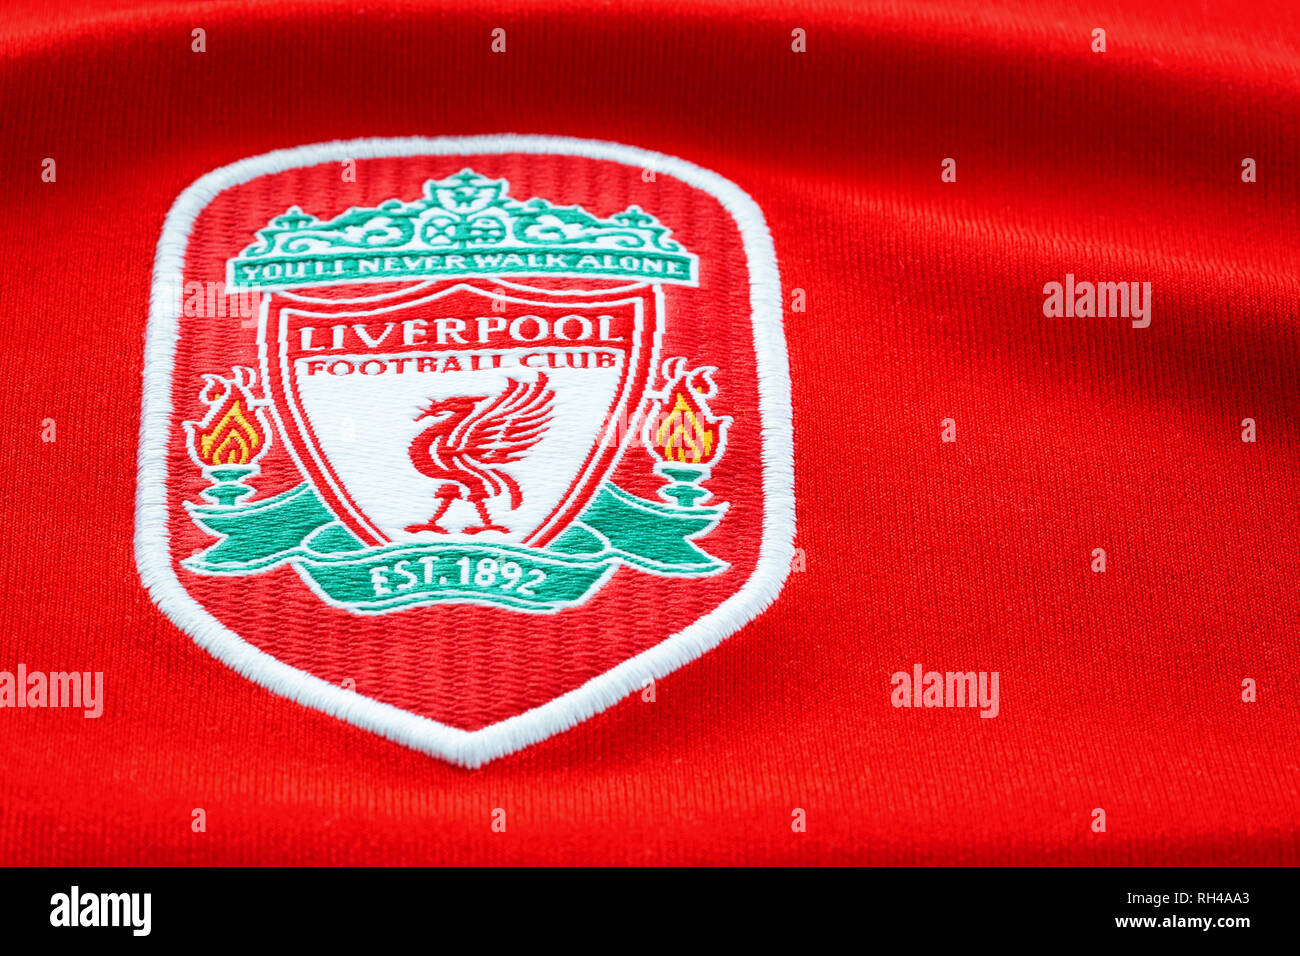 Liverpool Fc Badge Stock Photos & Liverpool Fc Badge Stock